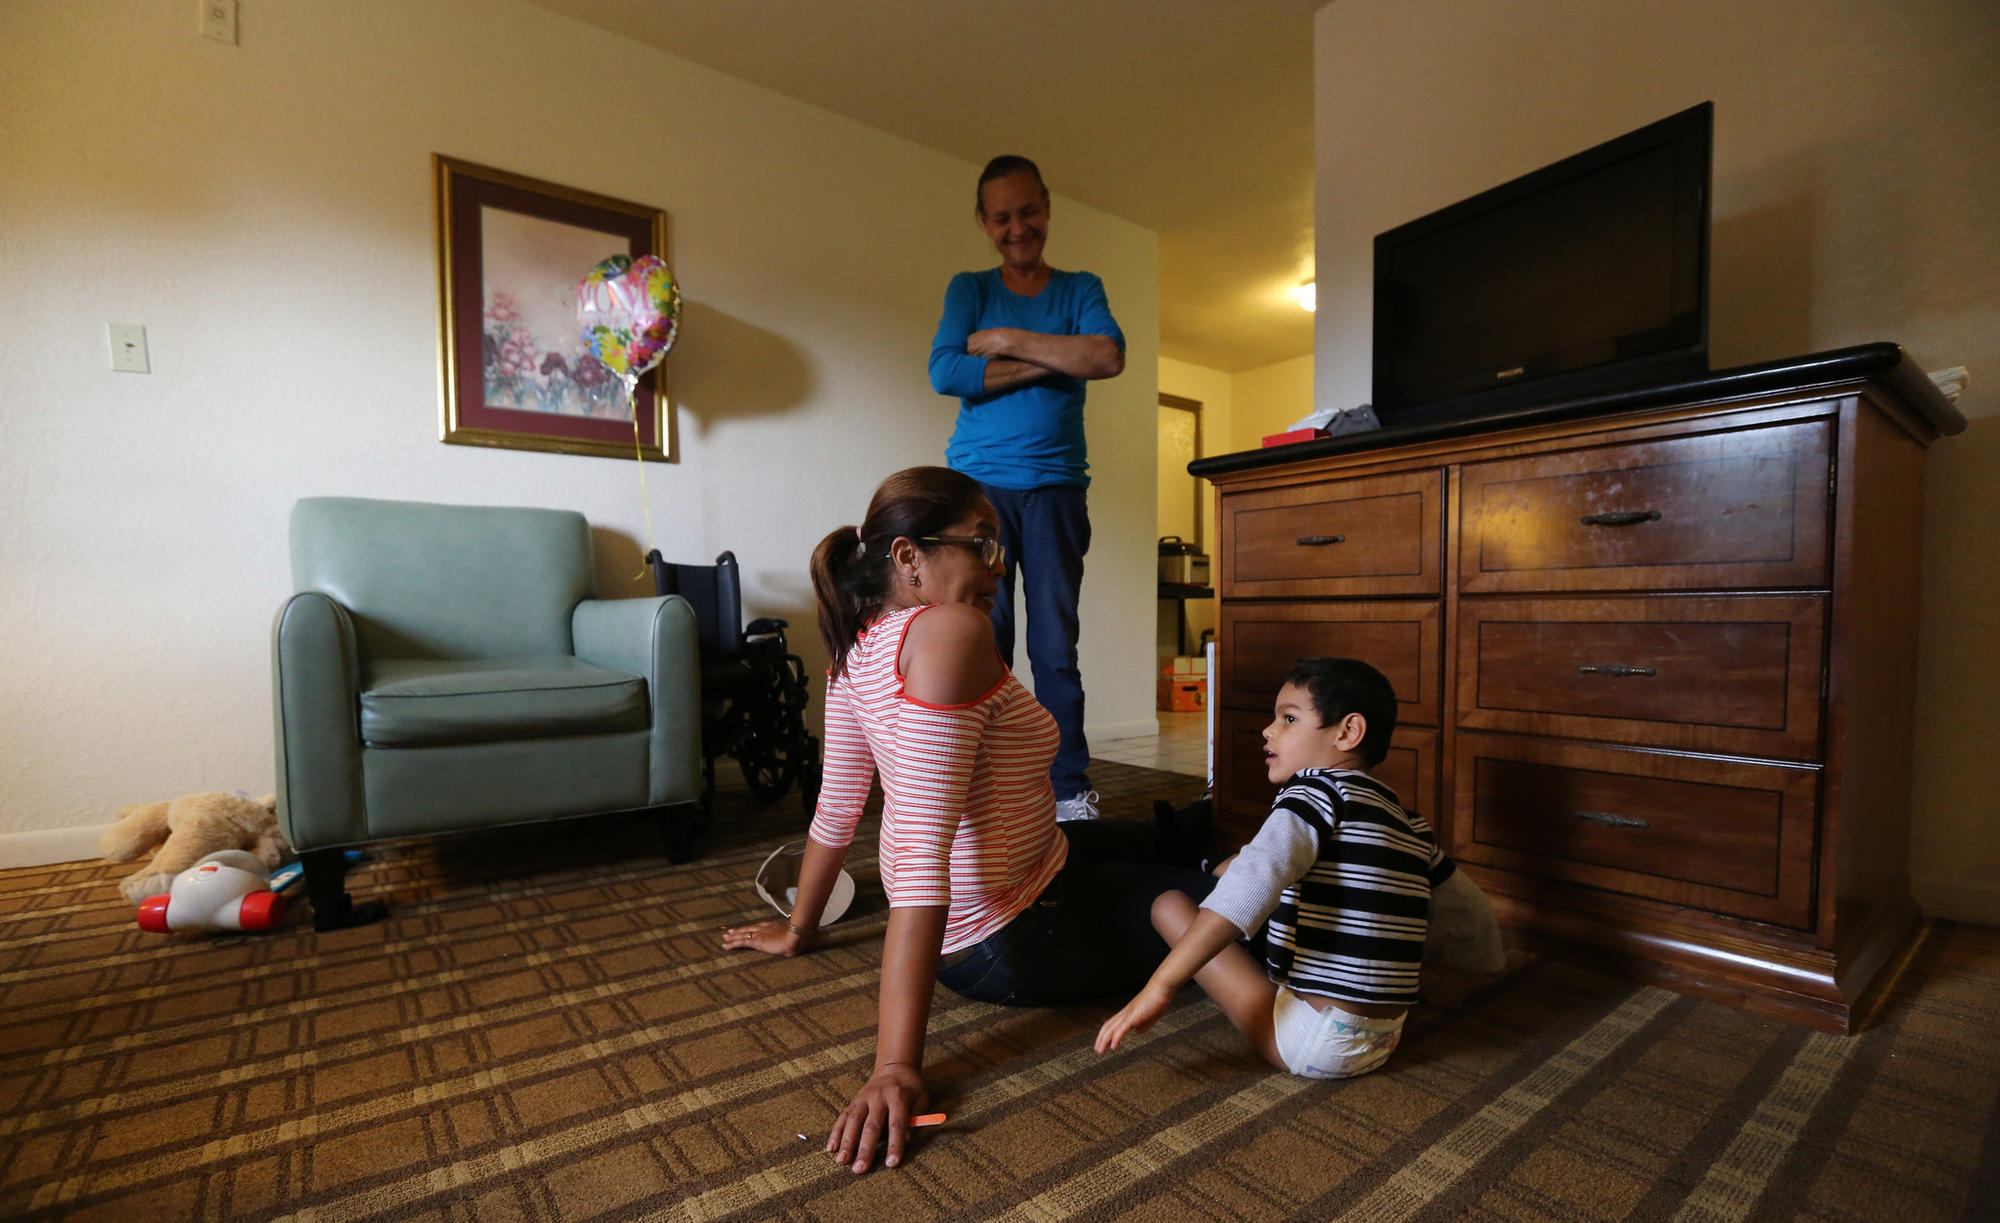 Survey of Puerto Ricans in Florida finds many plan to stay, language barrier a top challenge